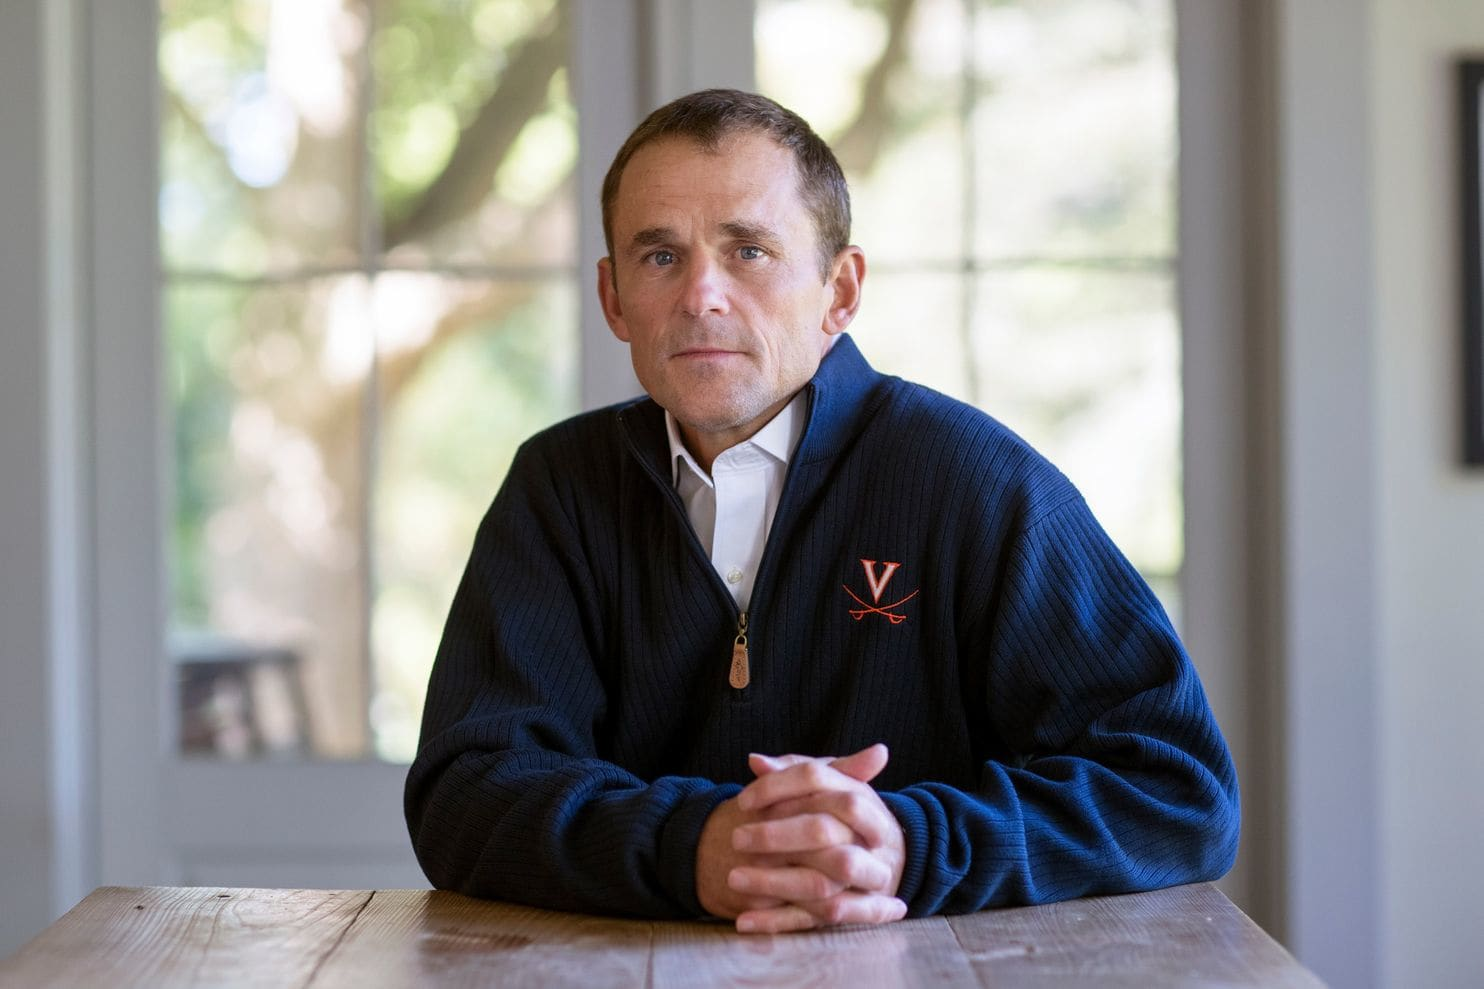 james ryan uva photo